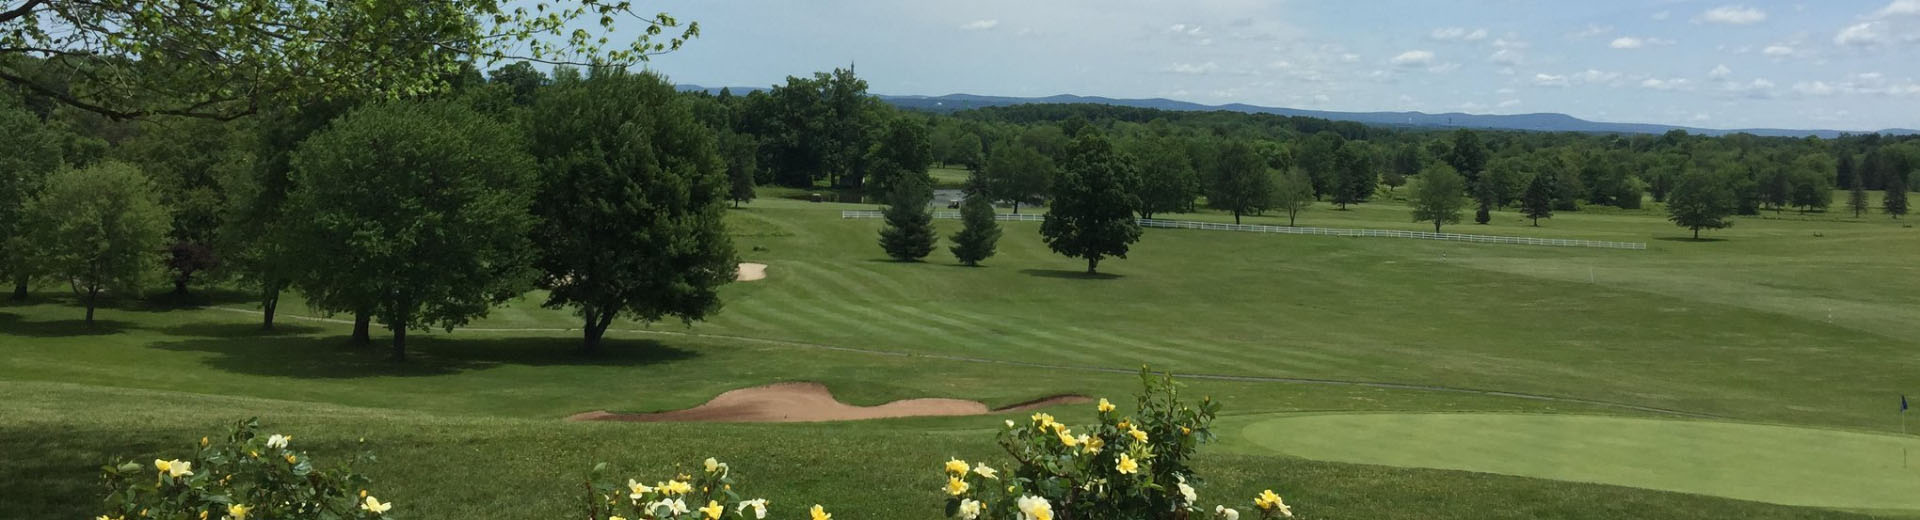 Spring is in bloom at Crestview Country Club